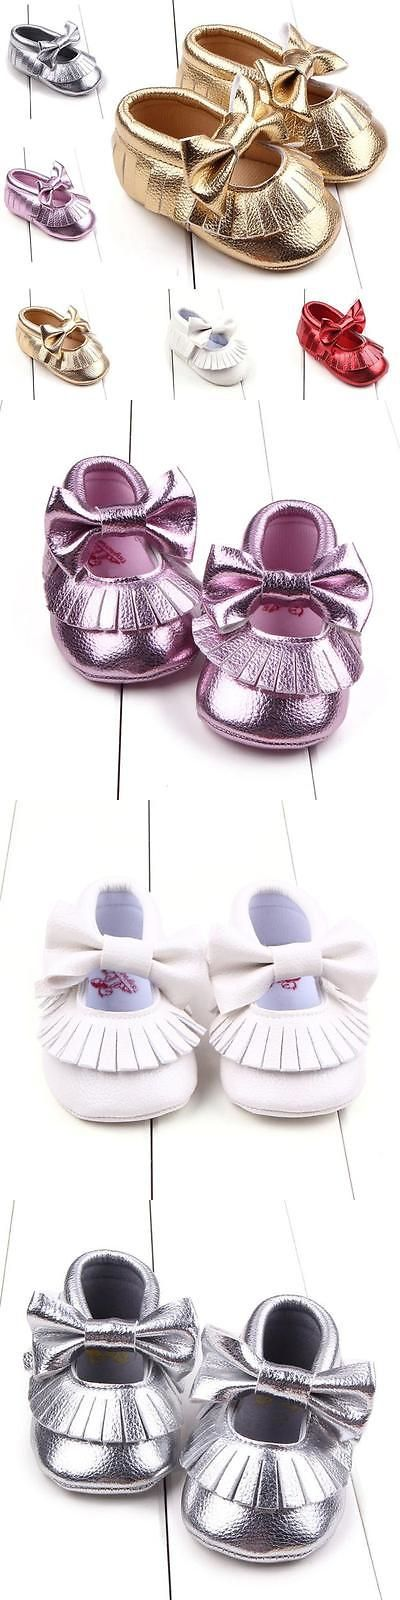 Baby Girls Shoes: Toddler Girl Crib Shoes Newborn Baby Bowknot Soft Sole Prewalker Sneakers 0-18M BUY IT NOW ONLY: $3.63